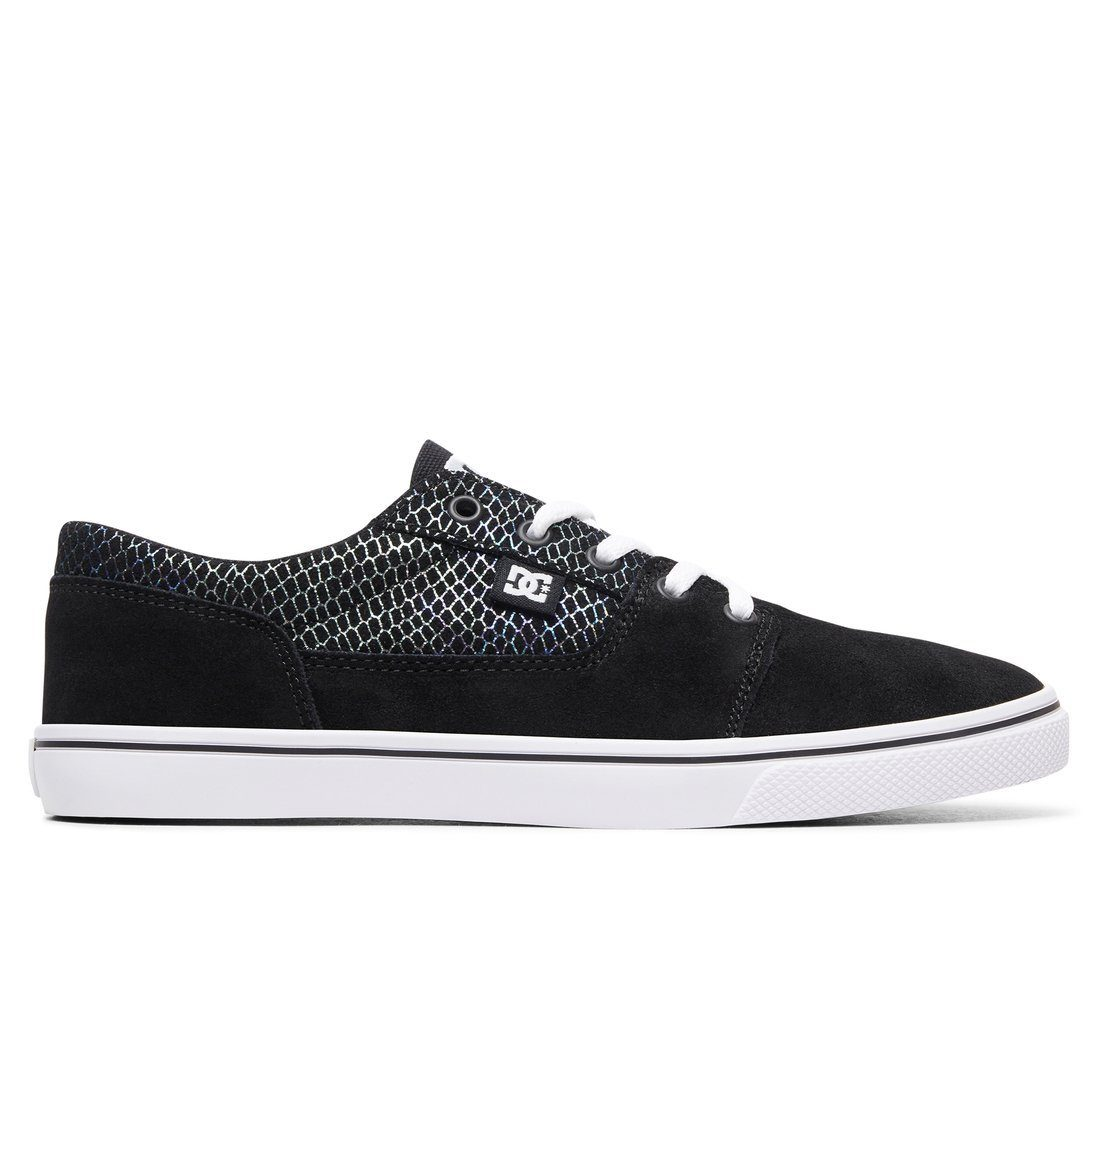 DC Shoes Schuhe Tonik W SE online kaufen  Black#ft5_slash#silver#ft5_slash#black